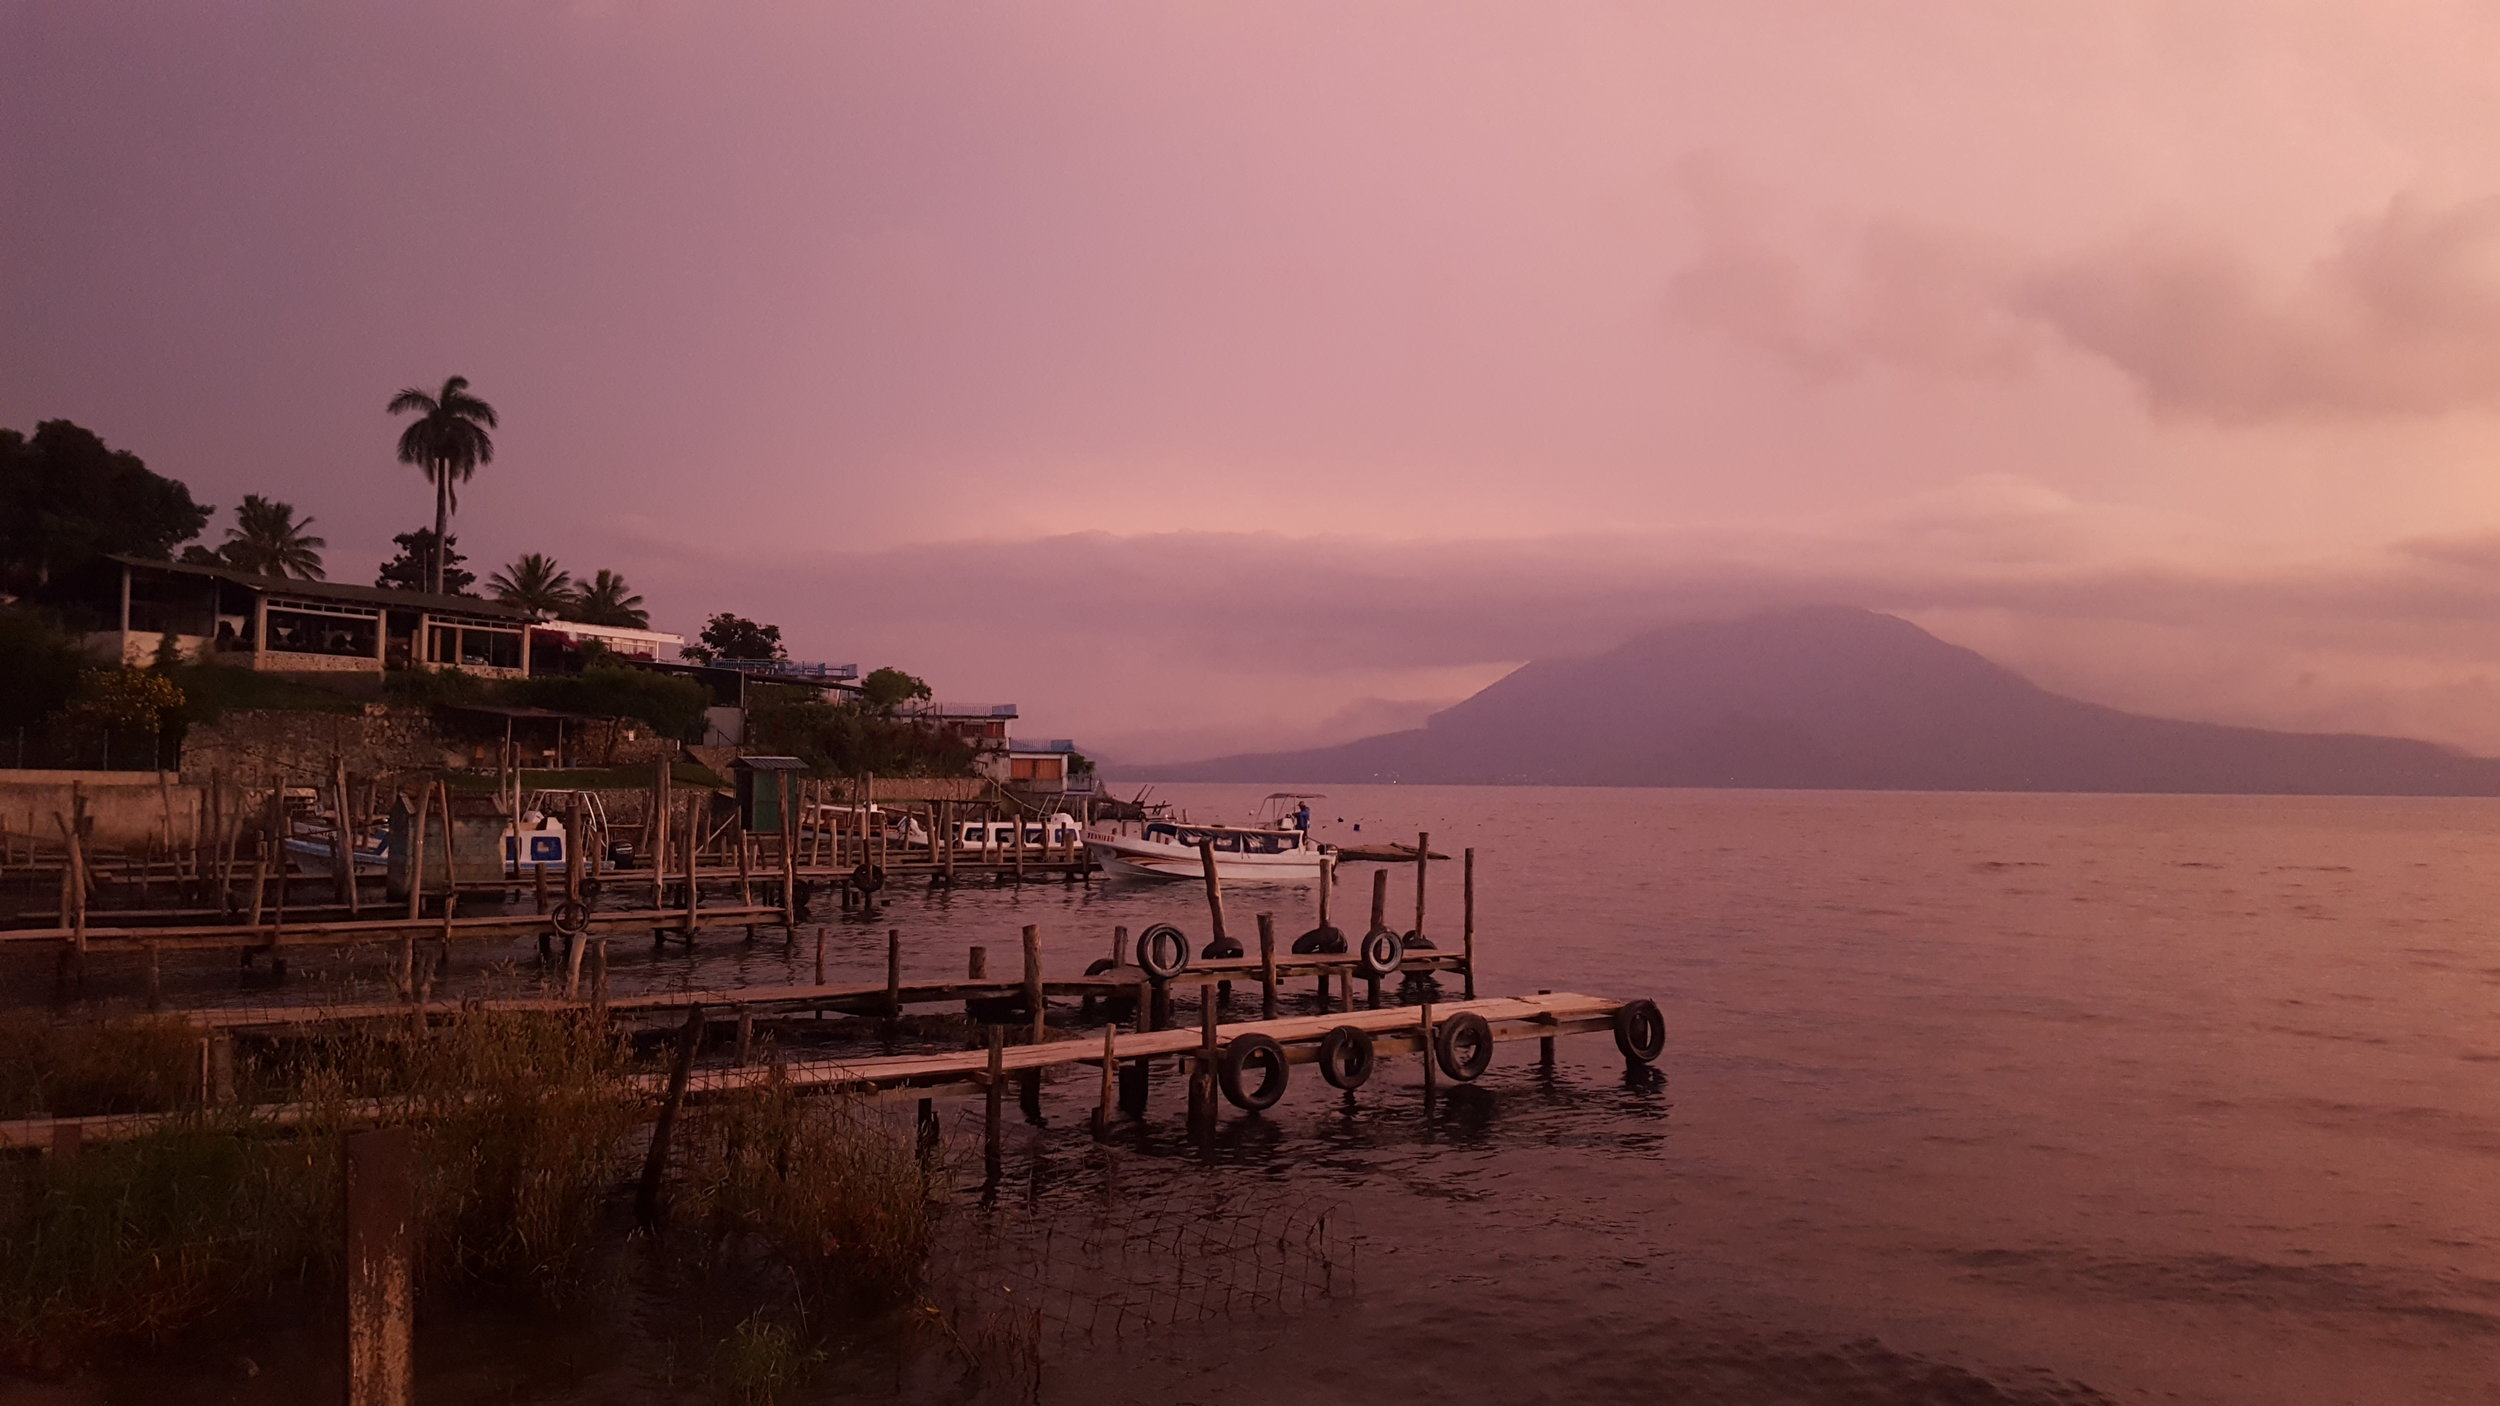 Lake Atitlán, Guatemala - 2017  This past November and December, I had the chance to travel for 6 weeks. In that time frame, I visited Mexico, Belize, Guatemala, Costa Rica, Greece, and Turkey. I tend to get a little too into getting good shots while travelling that I end up spending more time behind my camera or my phone than I probably should. But looking at the results afterwards makes it worth it. The above photo was taken during sunset in Guatemala at Lake Atitlán surrounded by volcanoes.